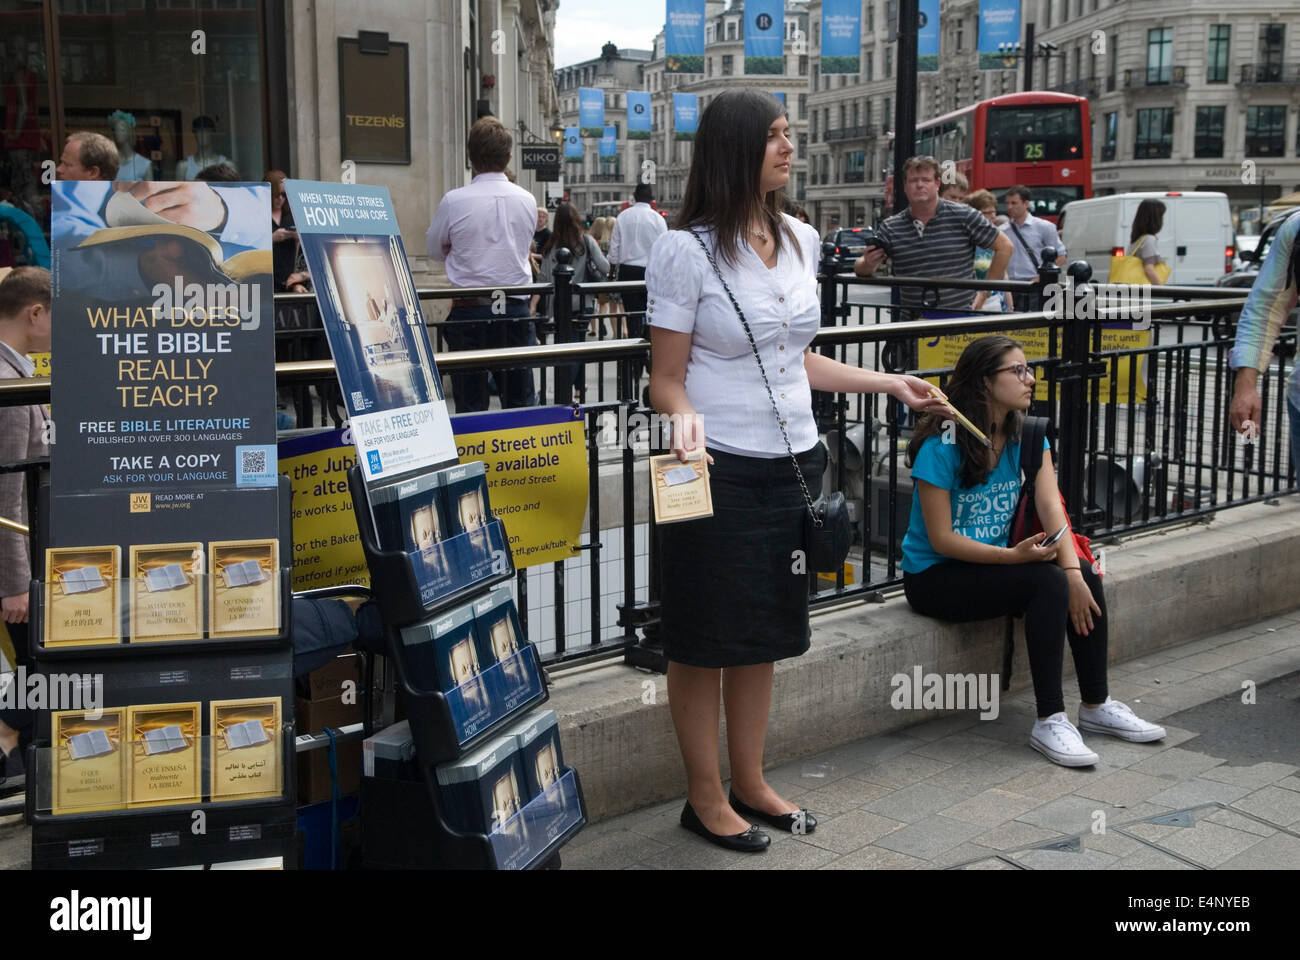 Awake and What Does the Bible Really Teach Jehovah's Witnesses literature being handed out in Oxford Street - Stock Image